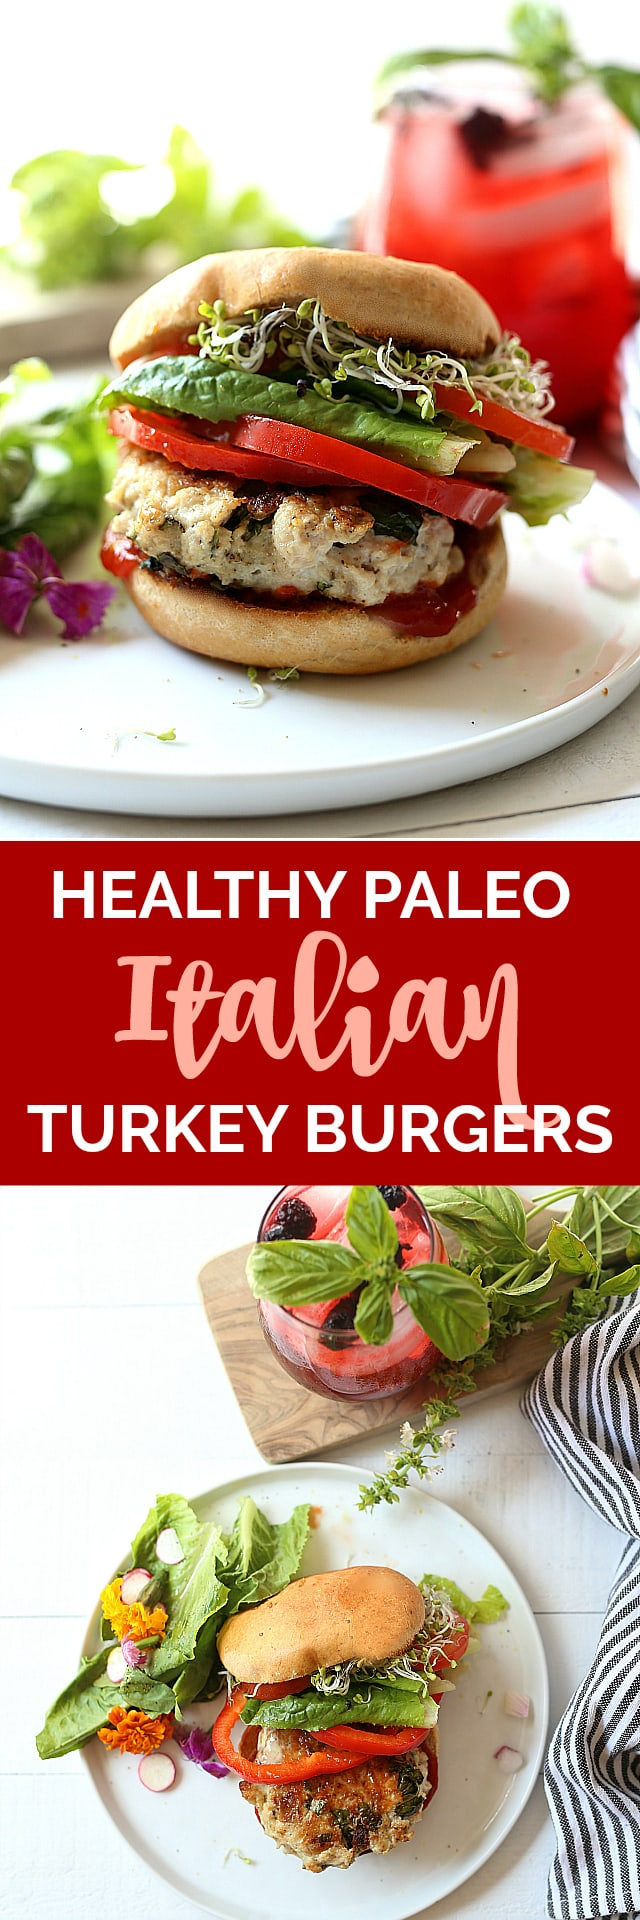 4-Ingredient healthy Italian turkey burger recipe sizzling with Italian flavors! Serve these ground turkey patties on a gluten-free bun with fresh red peppers and vegetables or over pasta with marinara sauce!